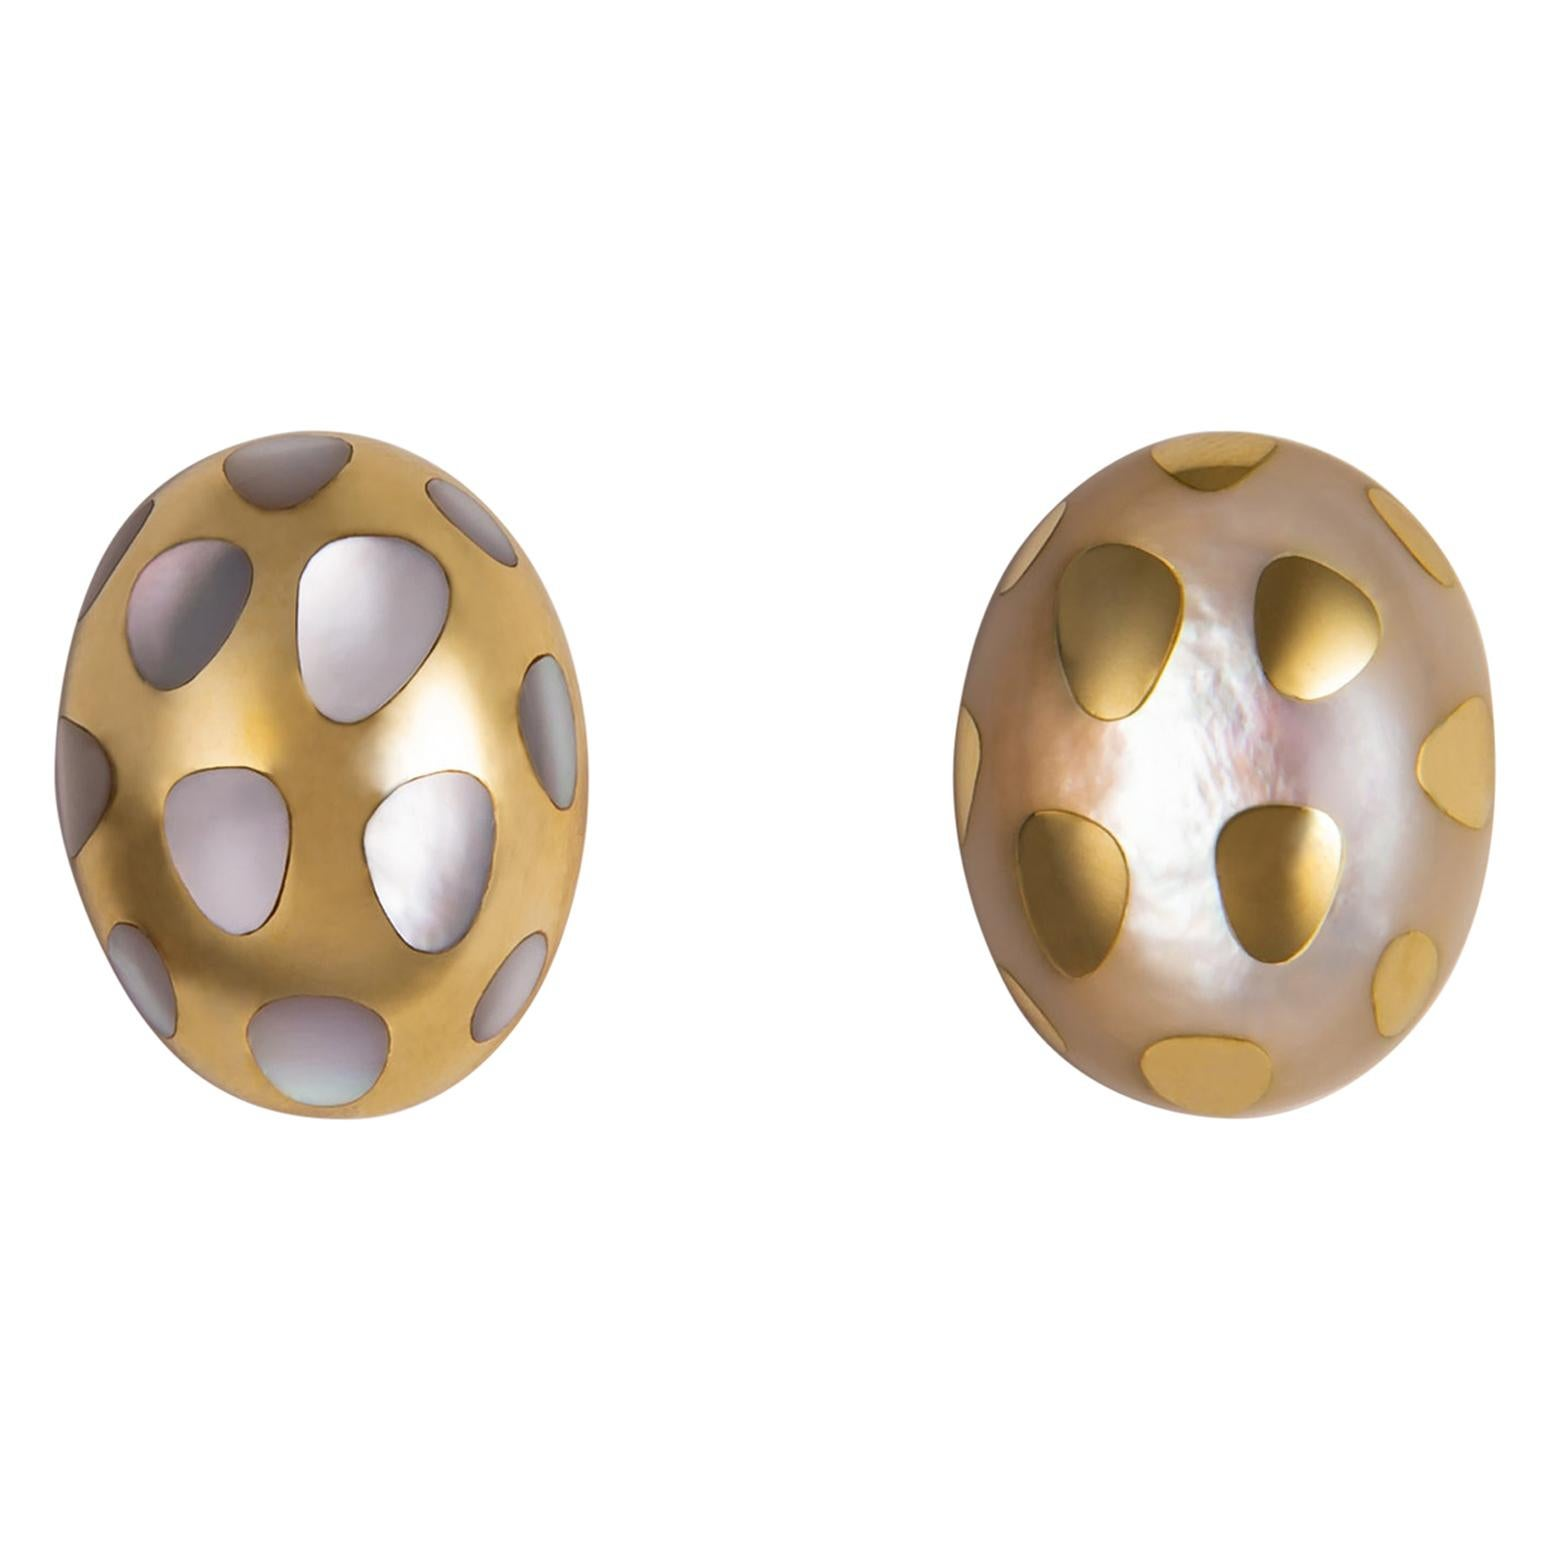 Tiffany & Co. Mother of Pearl and Gold Polka Dot Earrings